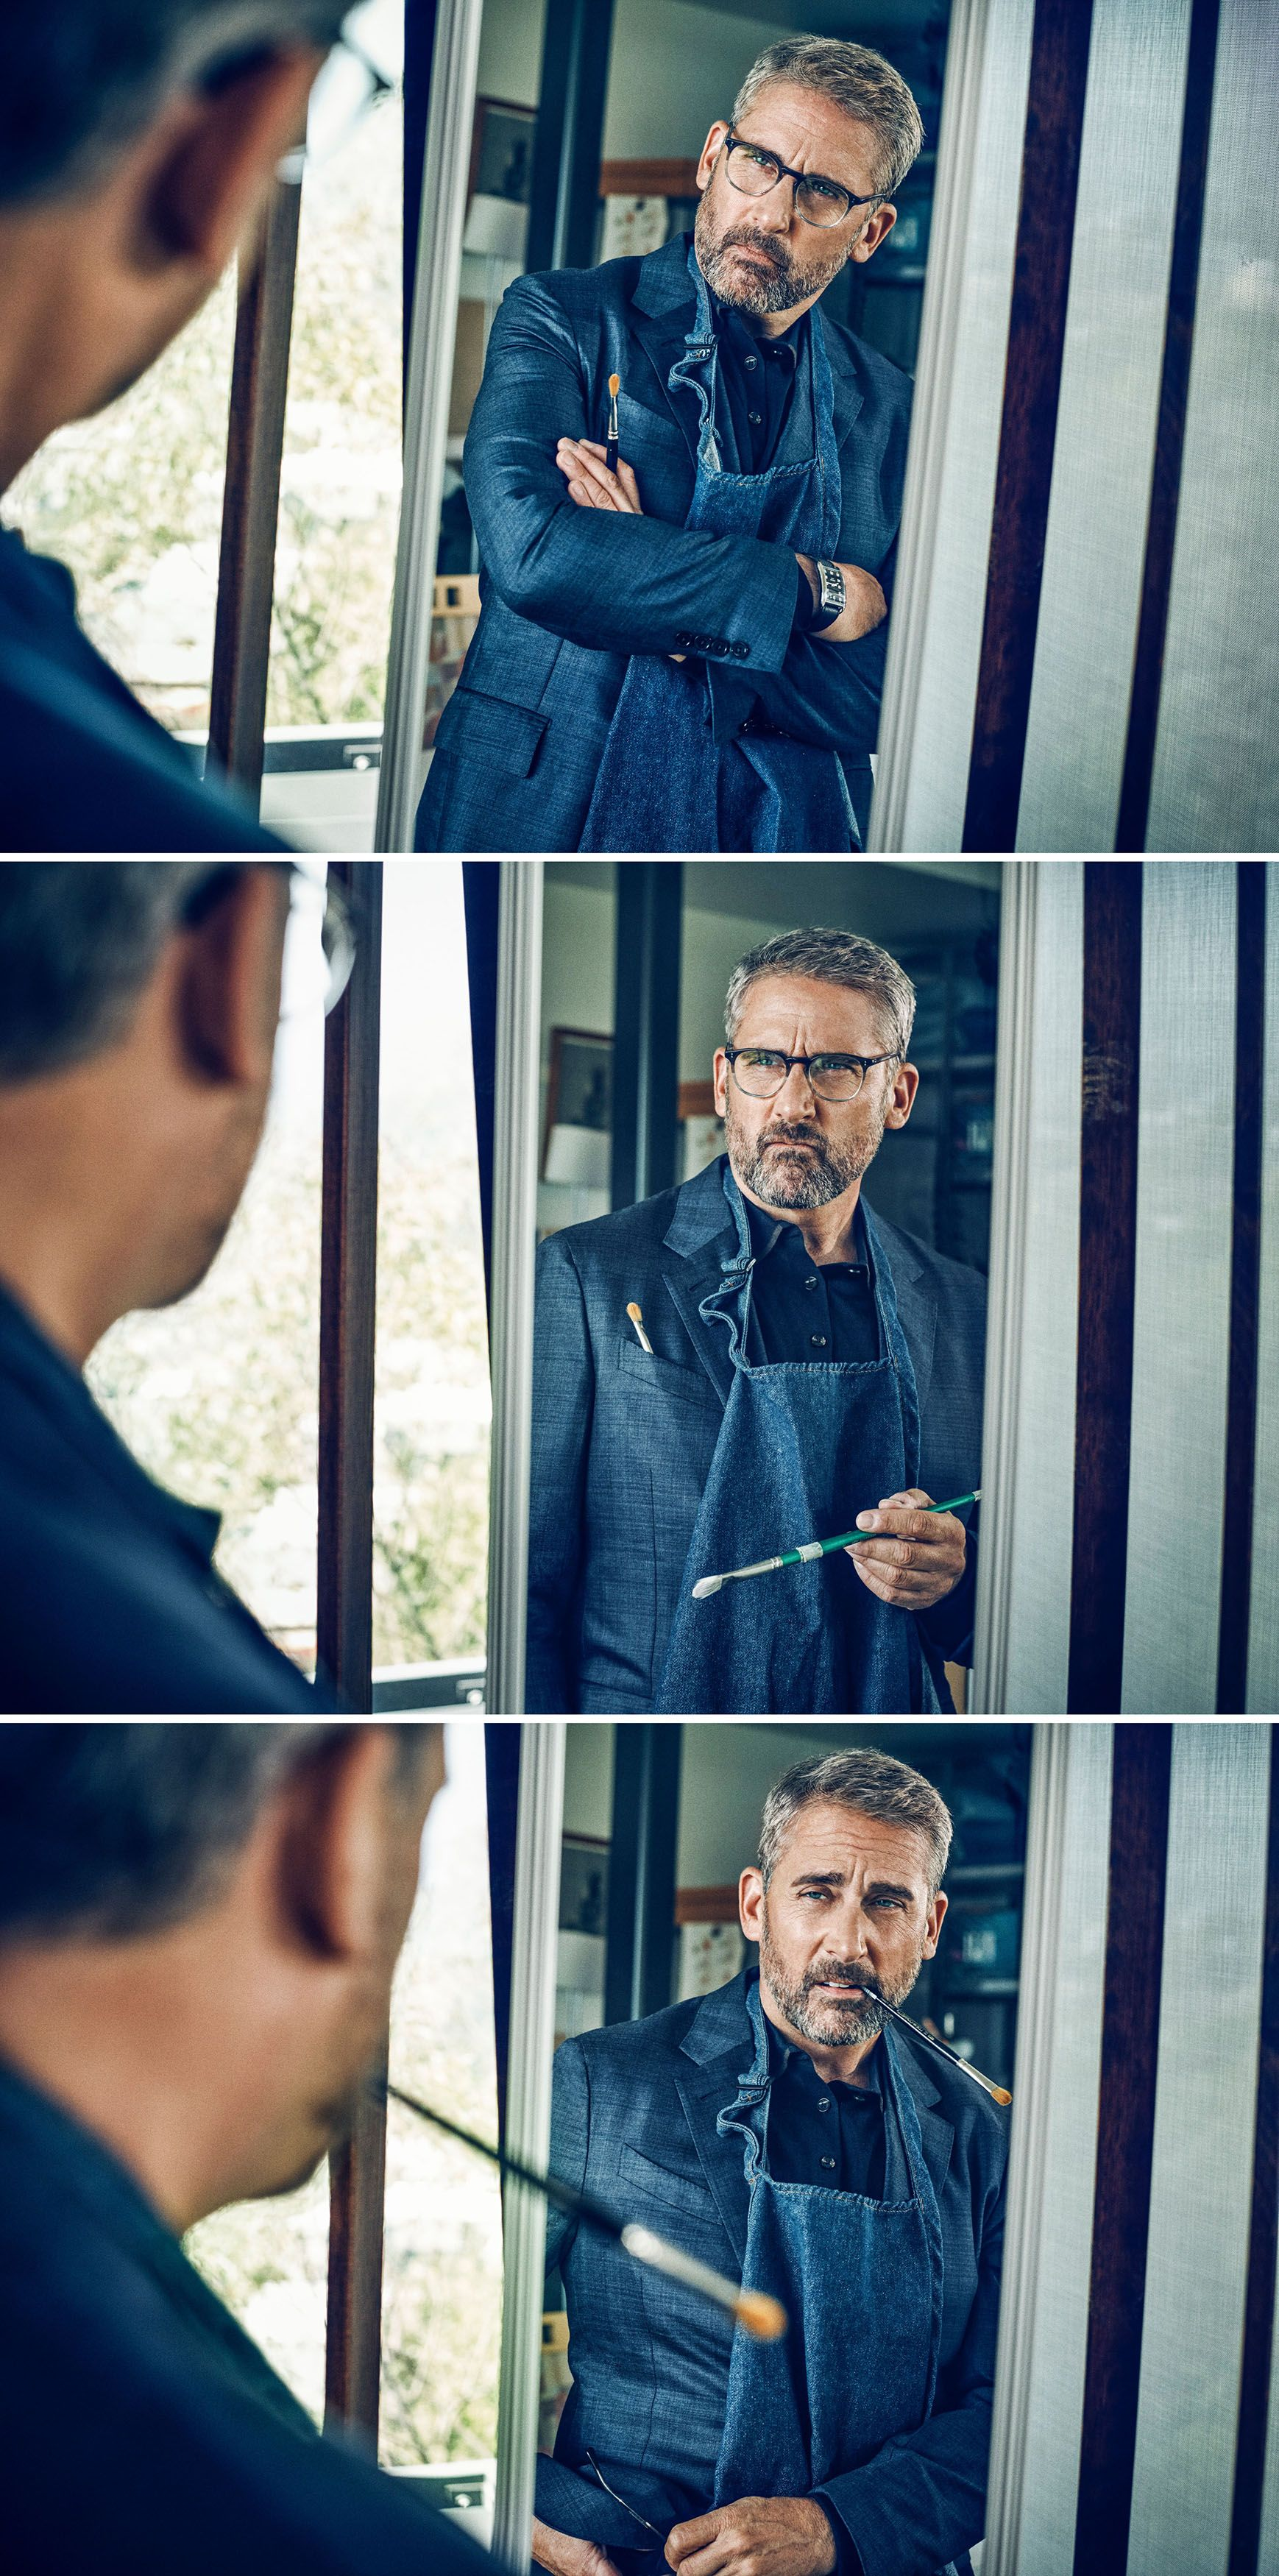 After The Office, The 40-Year-Old Virgin, and Foxcatcher, is Steve Carell only now showing us what he's really capable of? The nicest guy in showbiz talks about his three new Oscar-buzzworthy movies—plus why The Office wouldn't fly today.